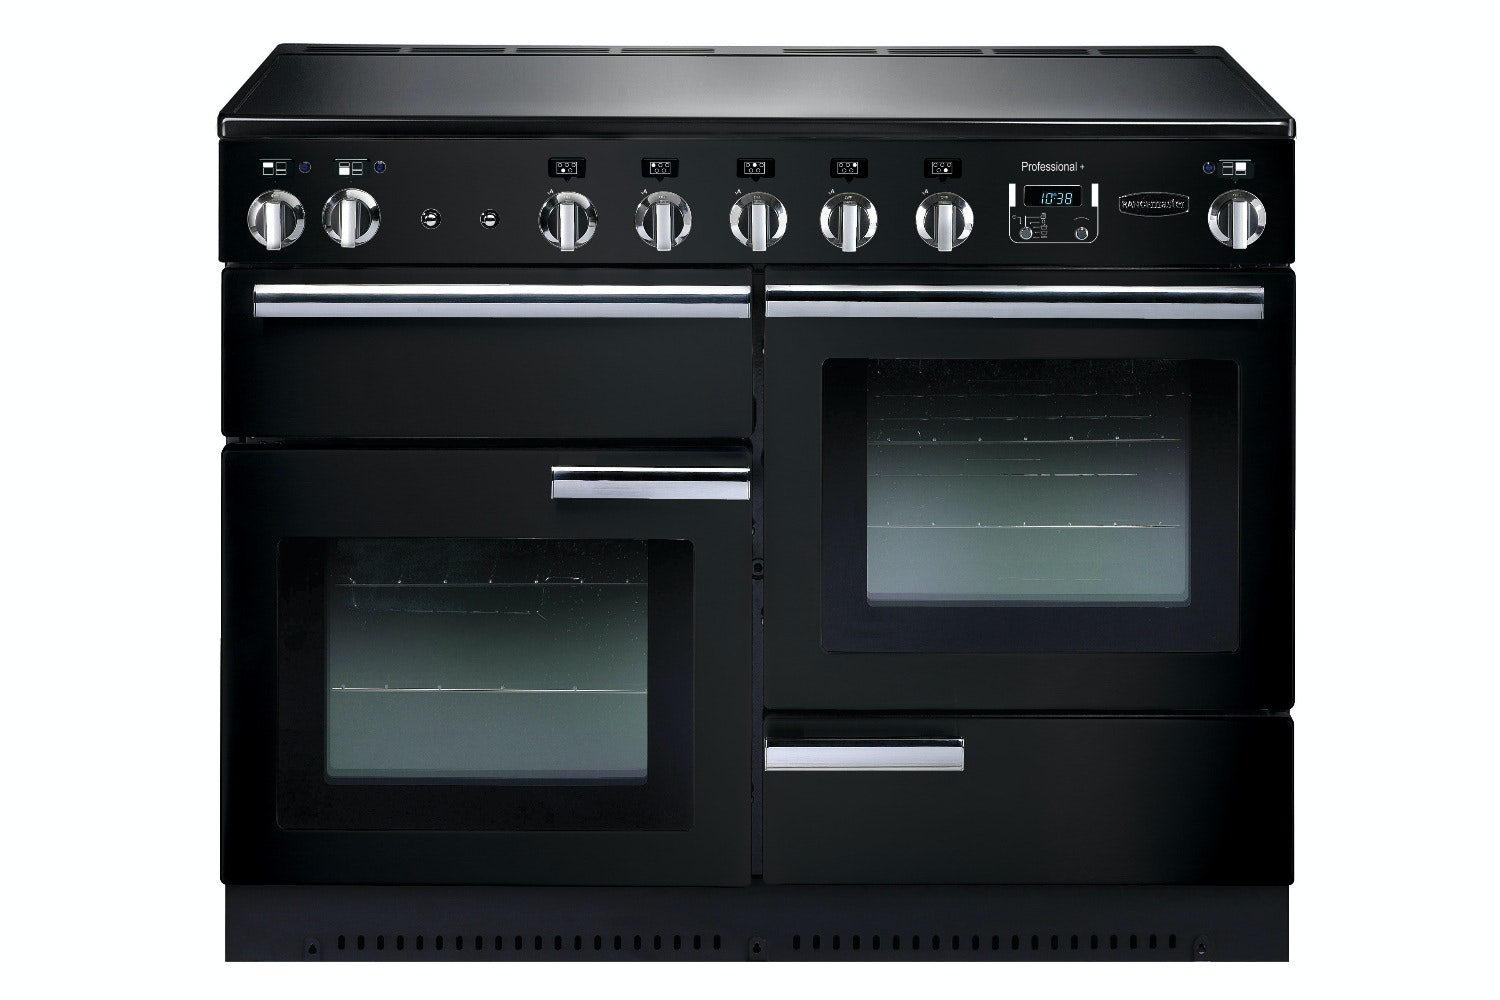 Rangemaster Pro Plus 110cm Electric Range Cooker | PROP110EIGB/C | Black